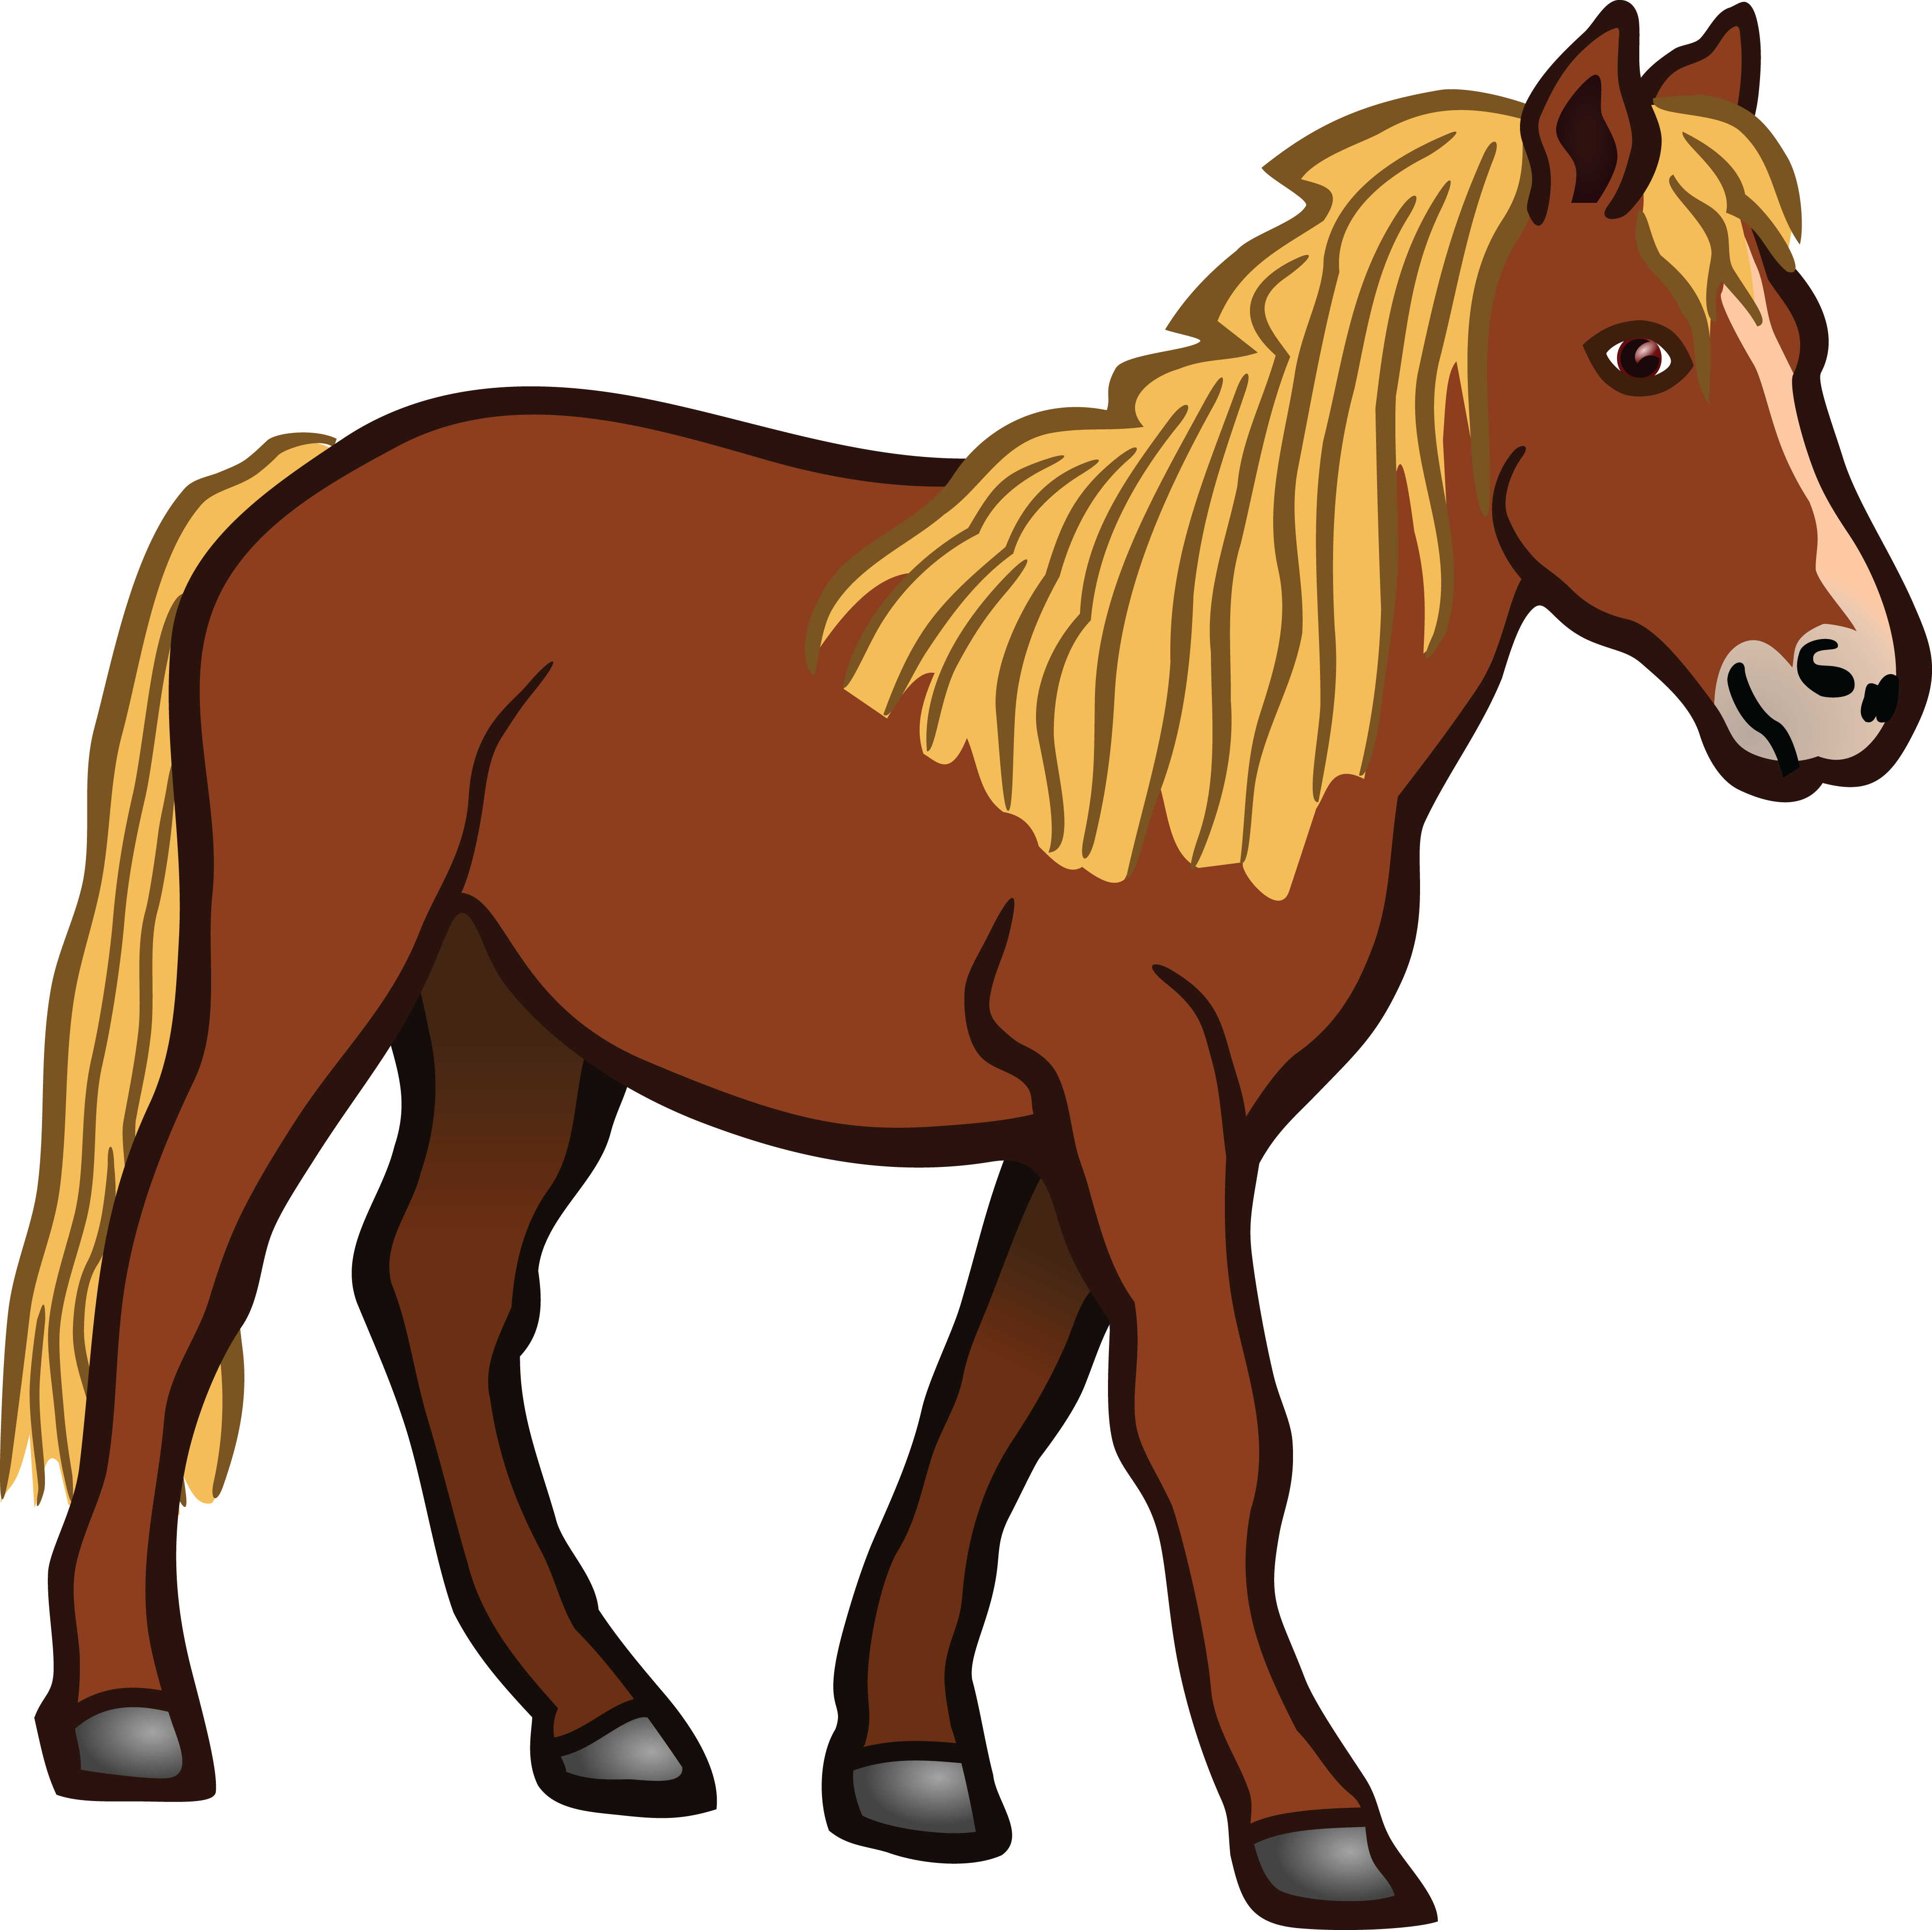 Free Clipart Of A Horse #00011495 .